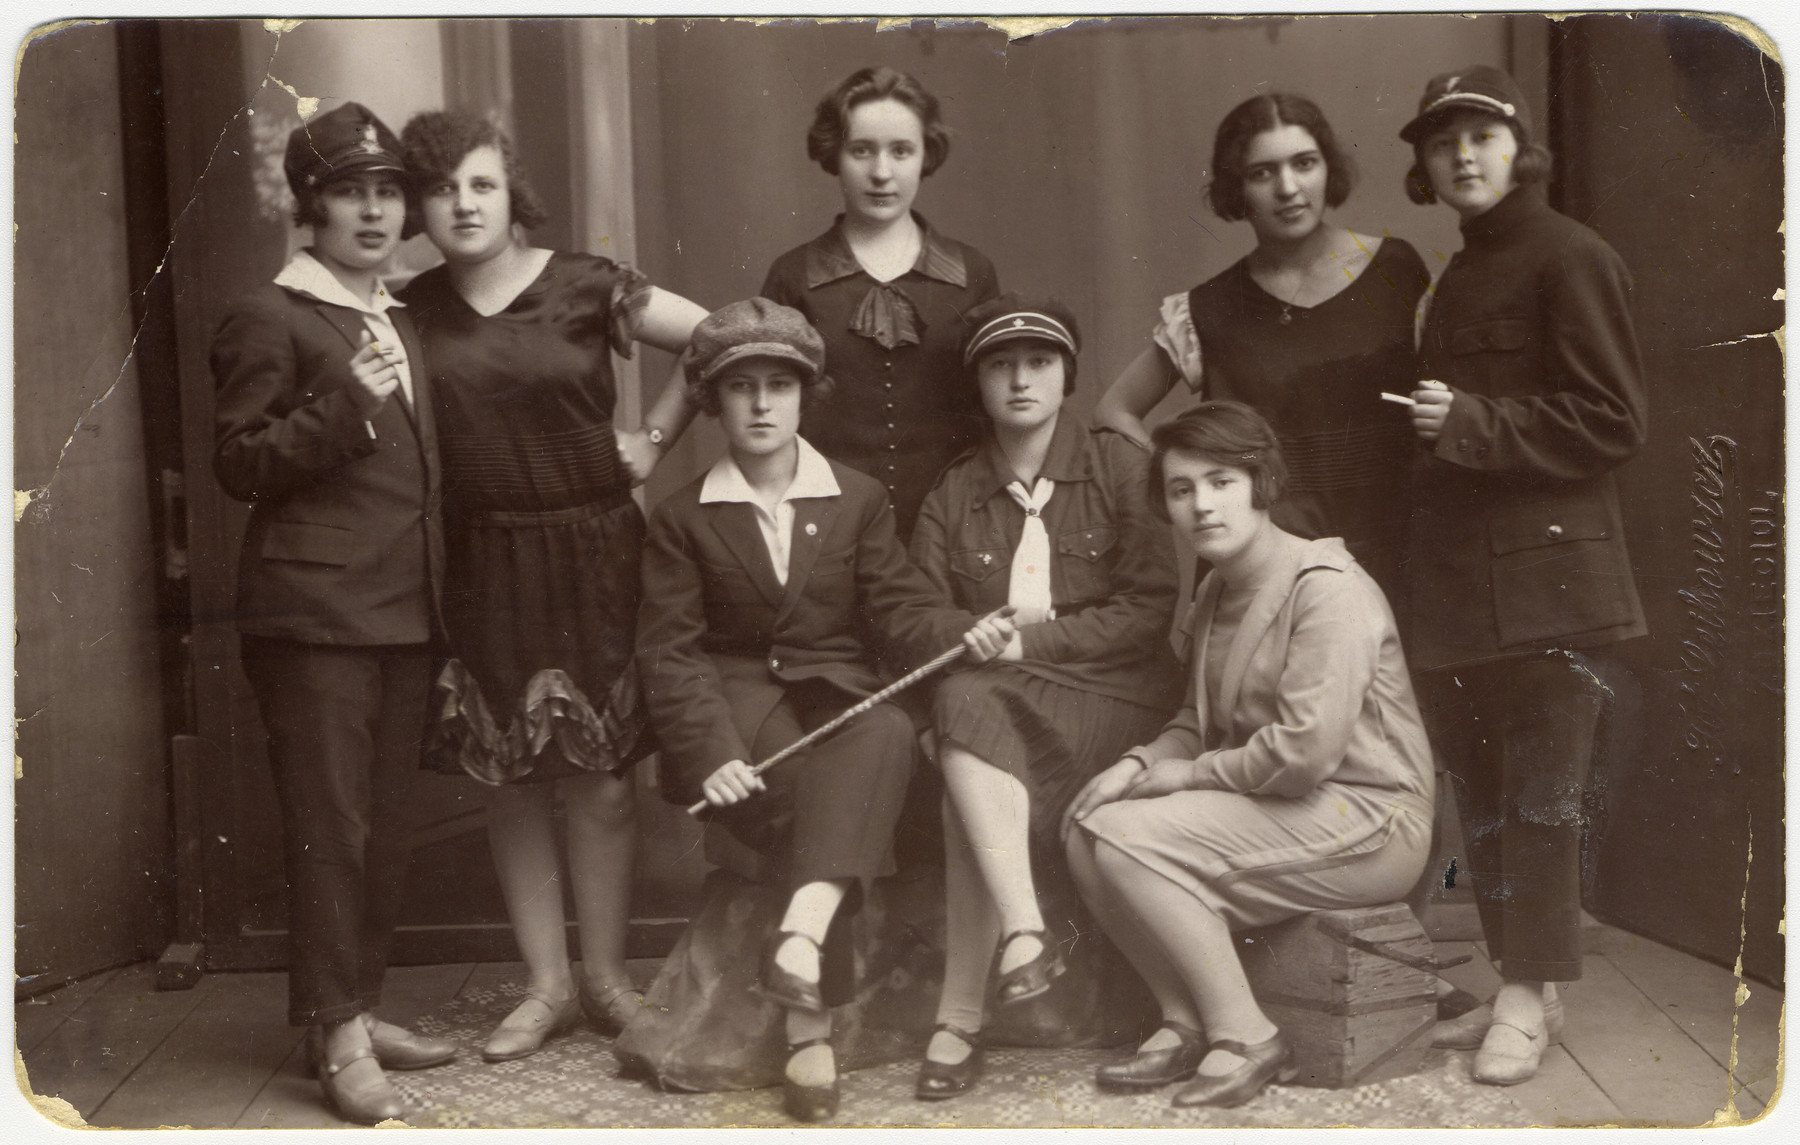 Prewar group portrait of young Jewish women in Zhetel.  Among those pictured are Soreh Turetsky (standing second from the left) and Shanke Minuksin (standing second from the right).